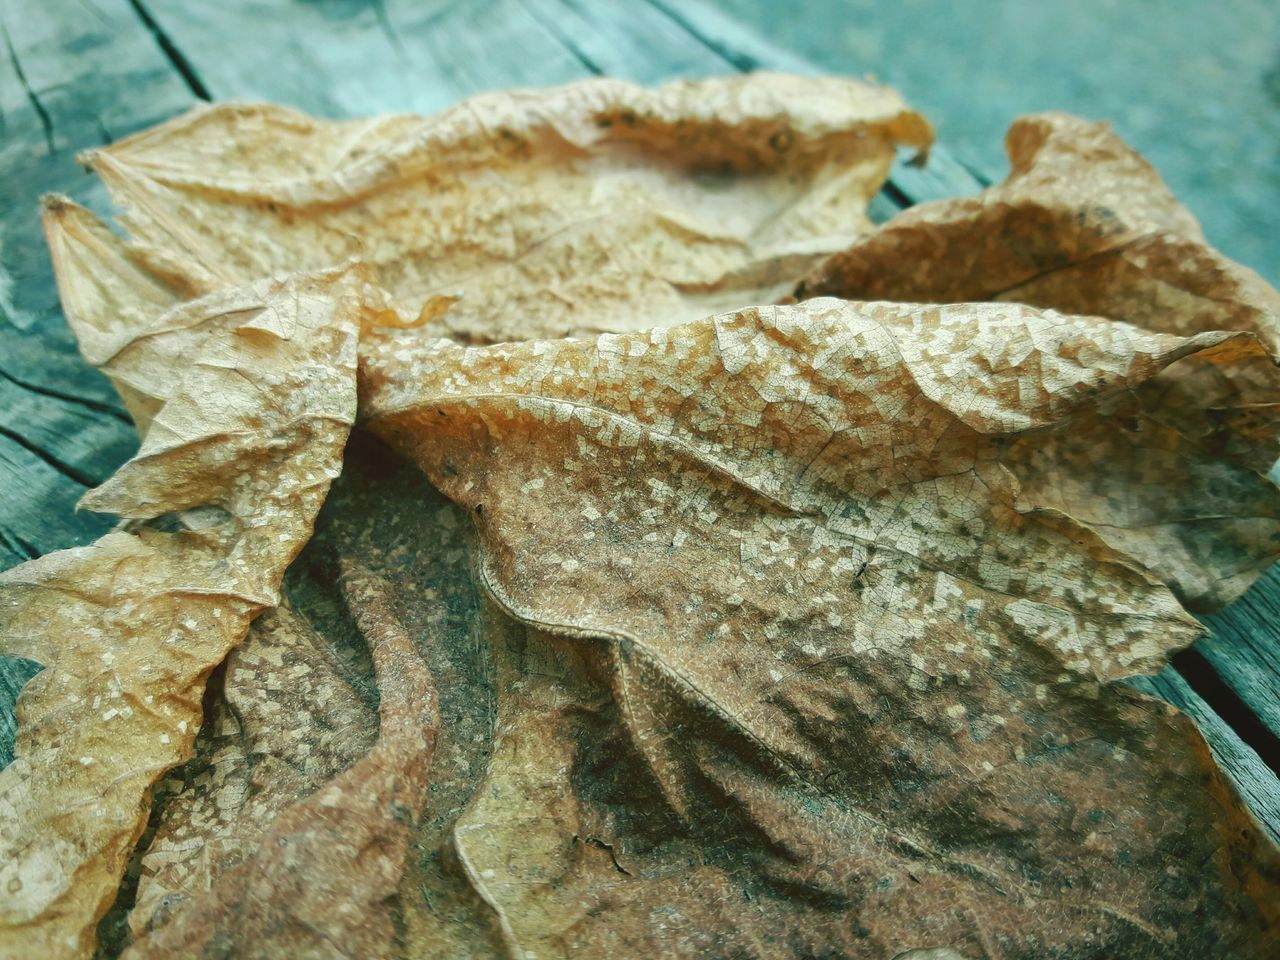 leaf, no people, close-up, large group of objects, day, outdoors, nature